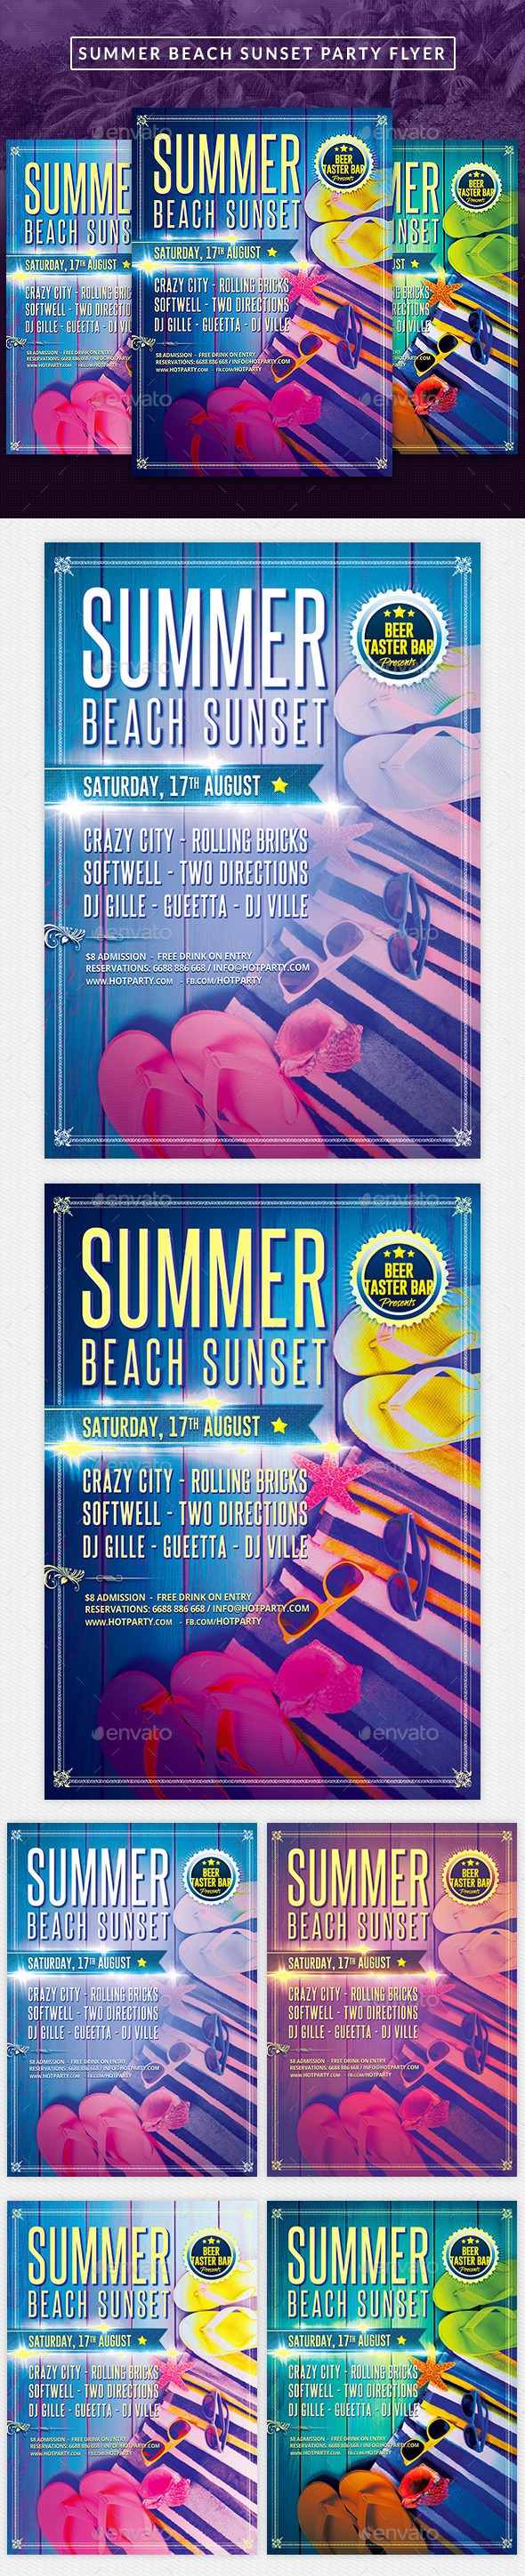 Summer Beach Sunset Party Flyer - Clubs & Parties Events